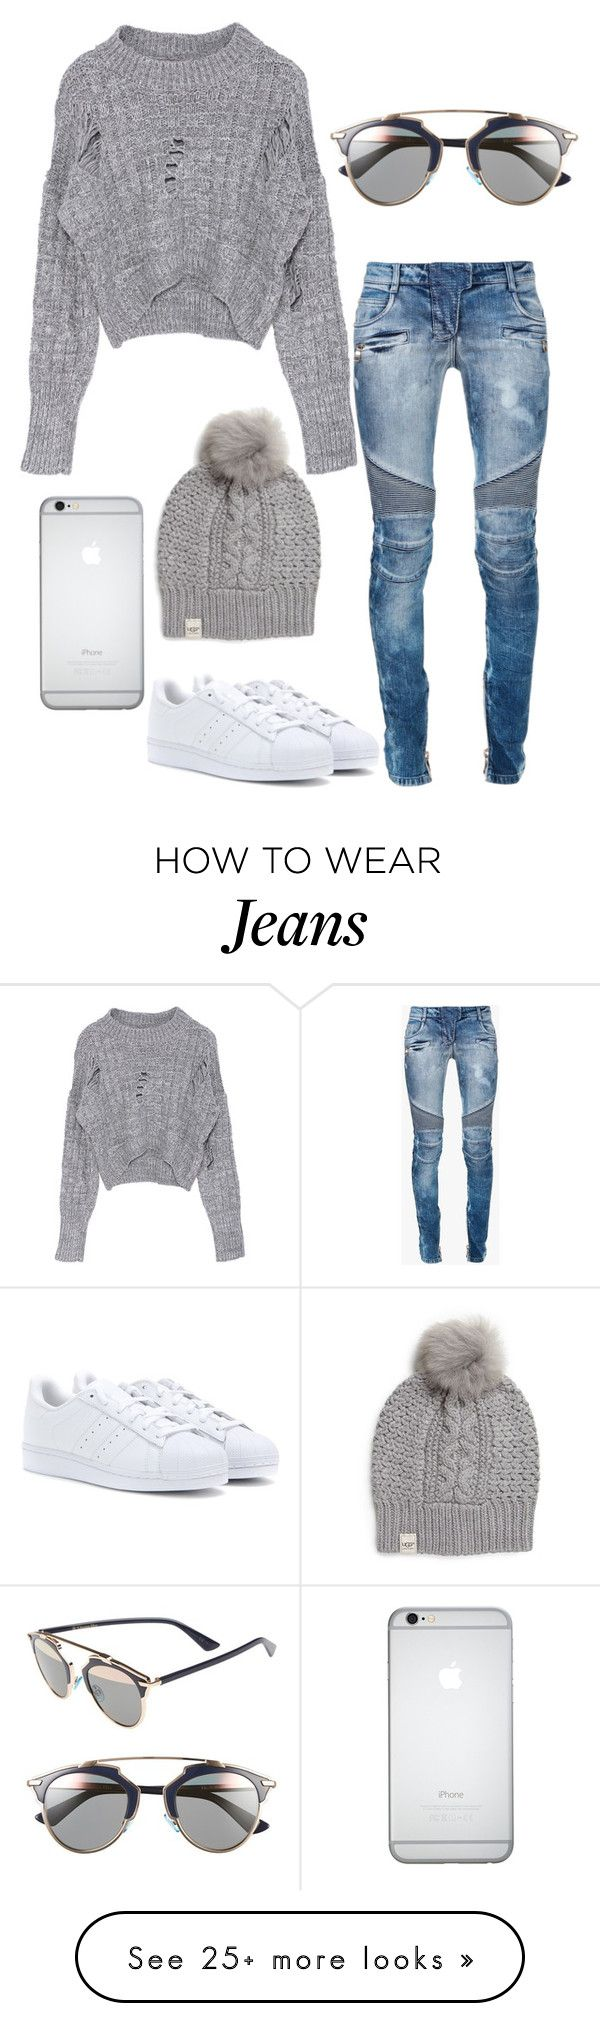 """Untitled #266"" by rayame on Polyvore featuring adidas, Balmain, UGG Australia and Christian Dior"